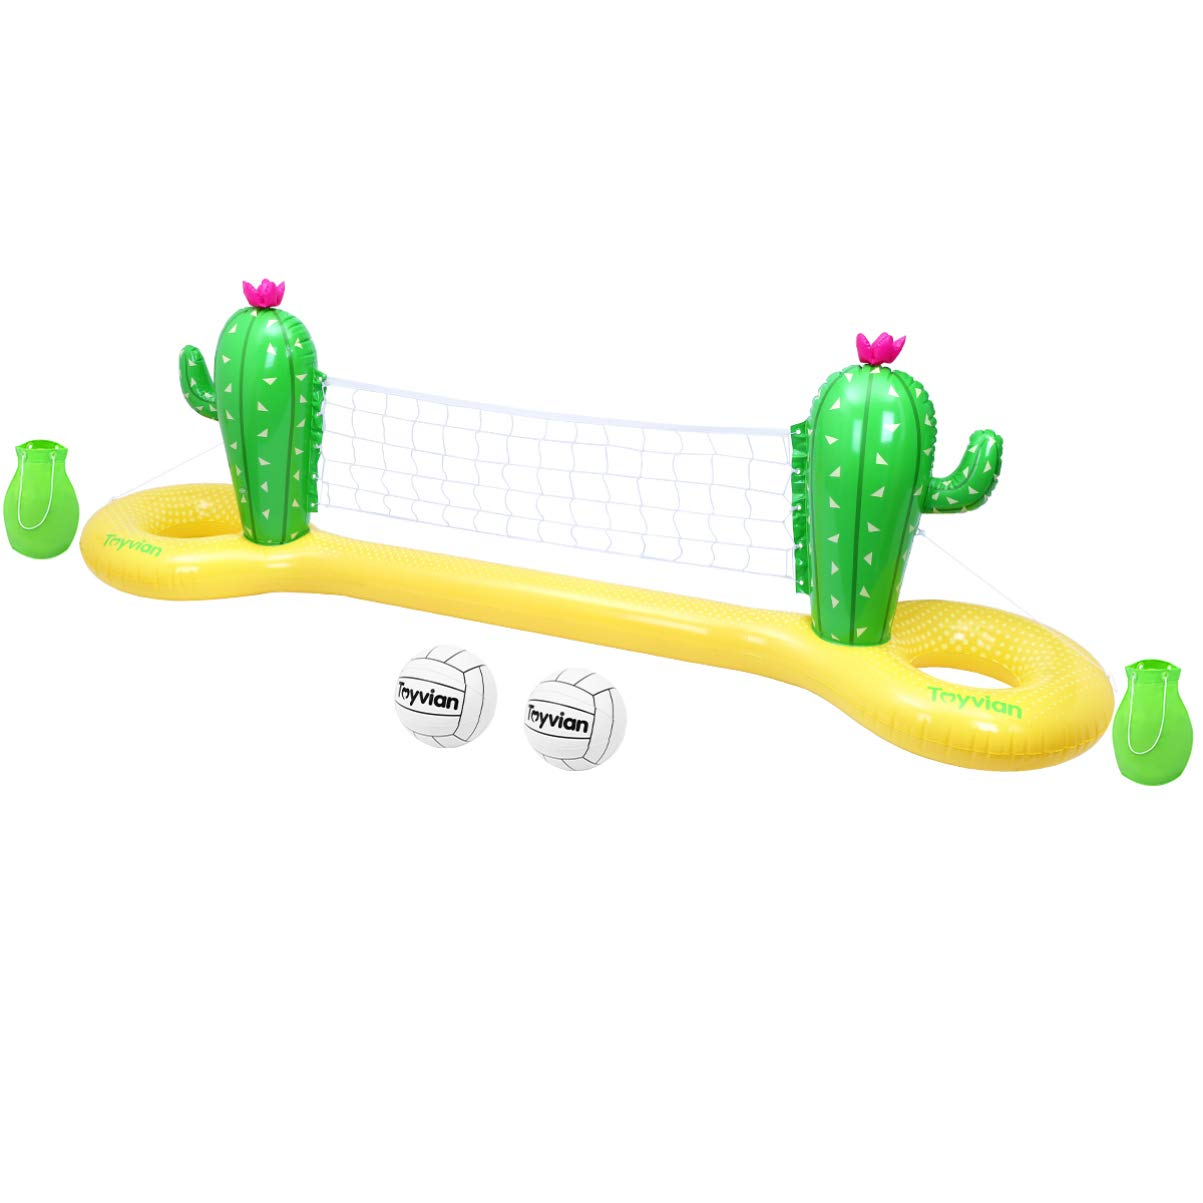 Toyvian Inflatable Pool Volleyball Set,Cactus Floating Volleyball Net for Pool Toys,Swimming Pool Volleyball Game Summer Party(118Inchx28Inchx39Inch)